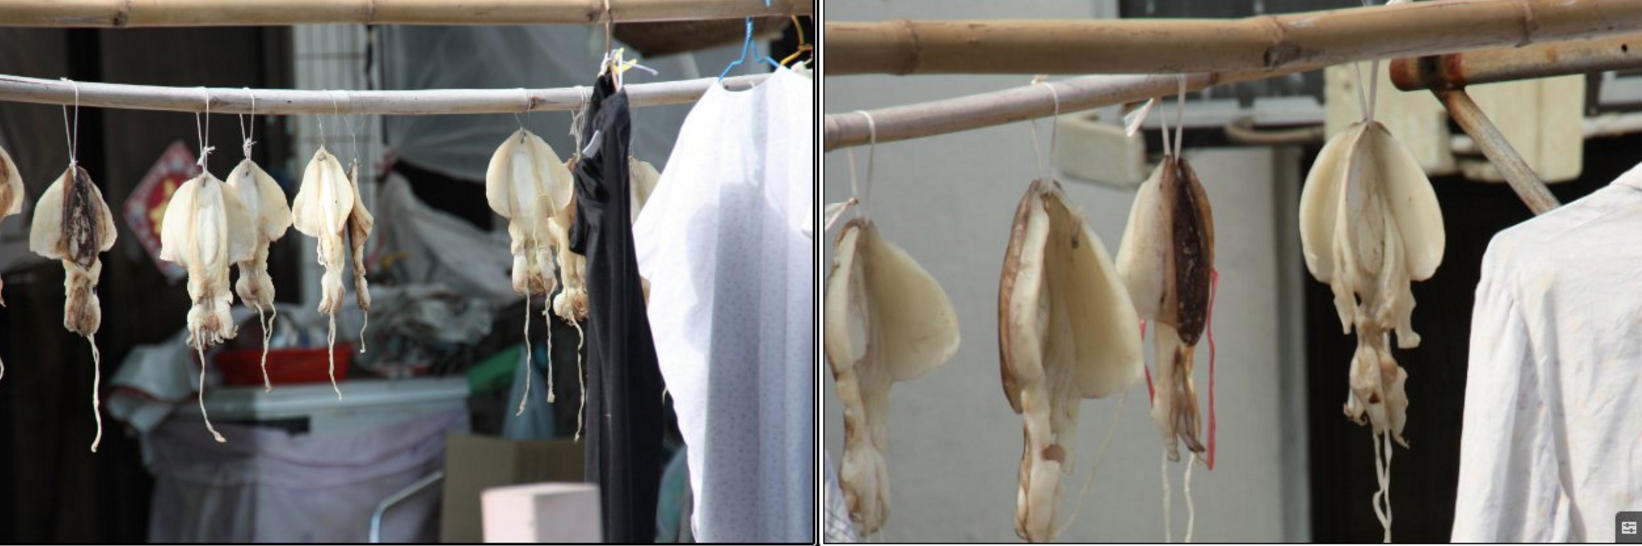 Drying cuttlefish at Hong Kong